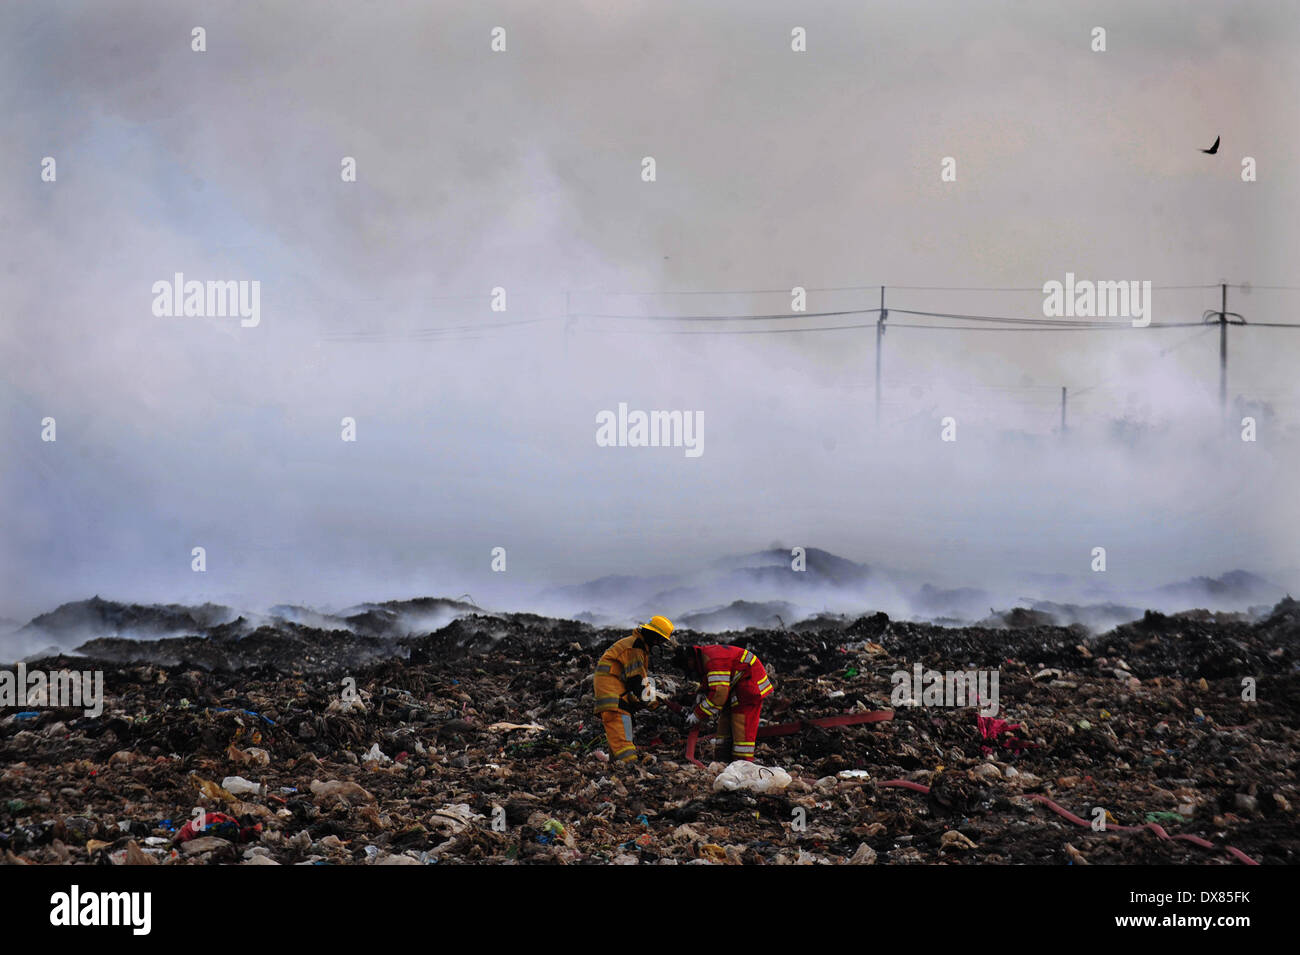 Samut Prakan, Thailand. 20th Mar, 2014. Firefighters put out a massive fire at a garbage disposal site in Samut Prakan province, Thailand, March 20, 2014. A fire started in Samut Prakan province of Thailand on March 16 and released toxic gas into the air. People living near the burning garbage dump have been forced to take shelter outside the danger zone. Credit:  Rachen Sageamsak/Xinhua/Alamy Live News - Stock Image